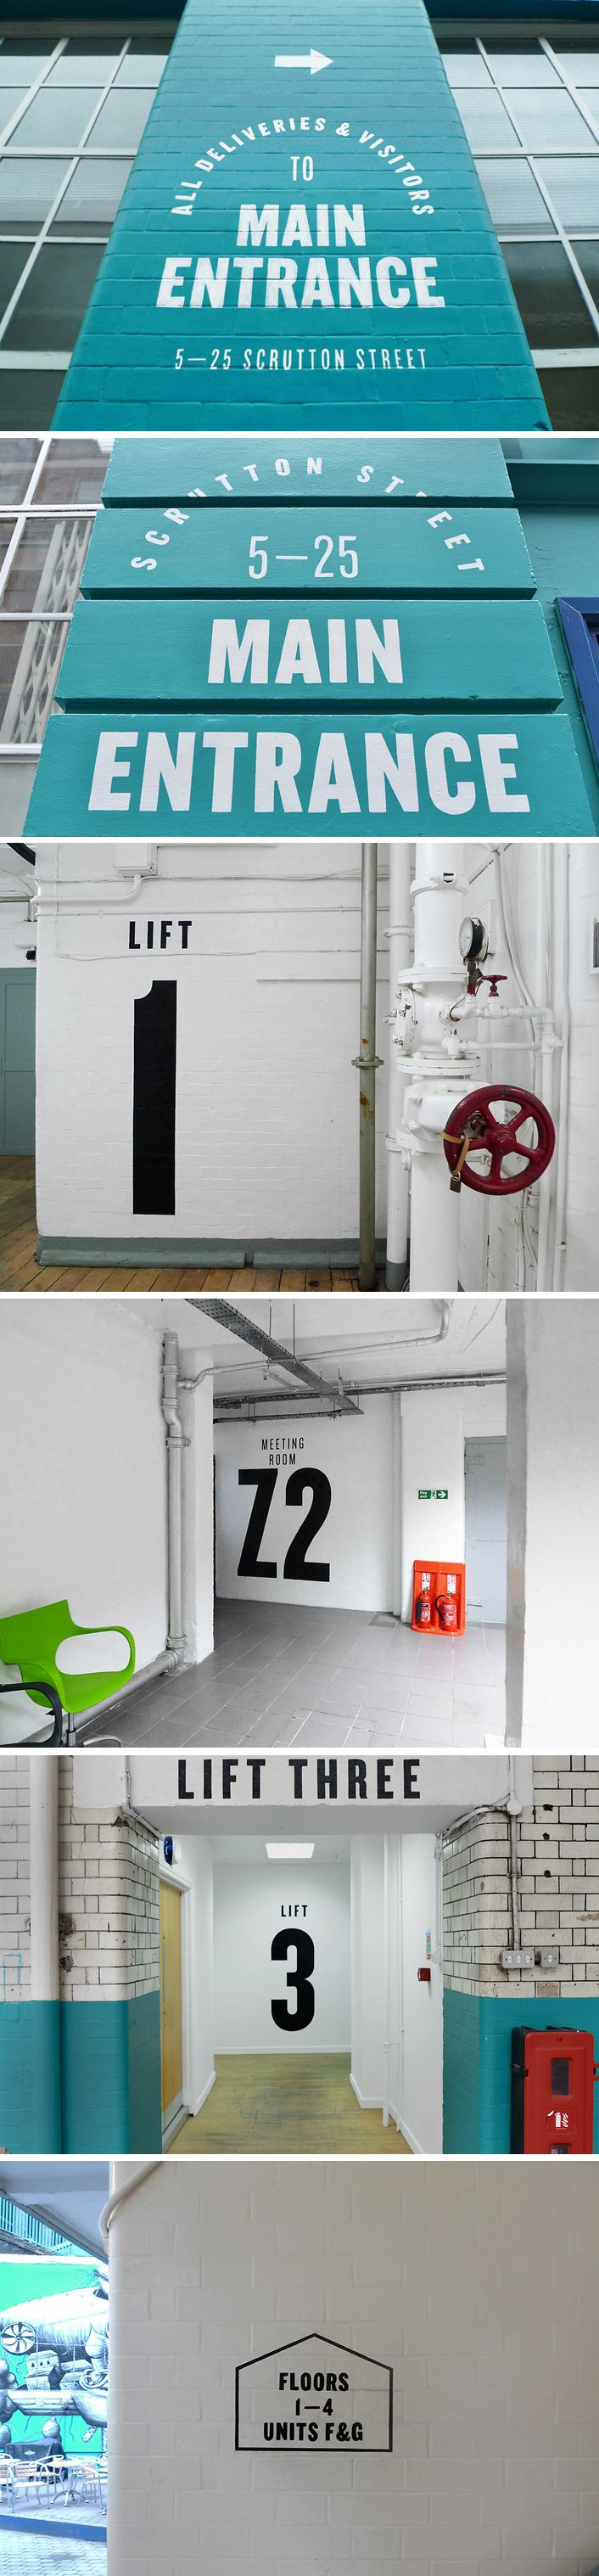 Bunch - Zetland House Signage - http://www.bunchdesign.com/projects/zetland_house_signage-p222.htm